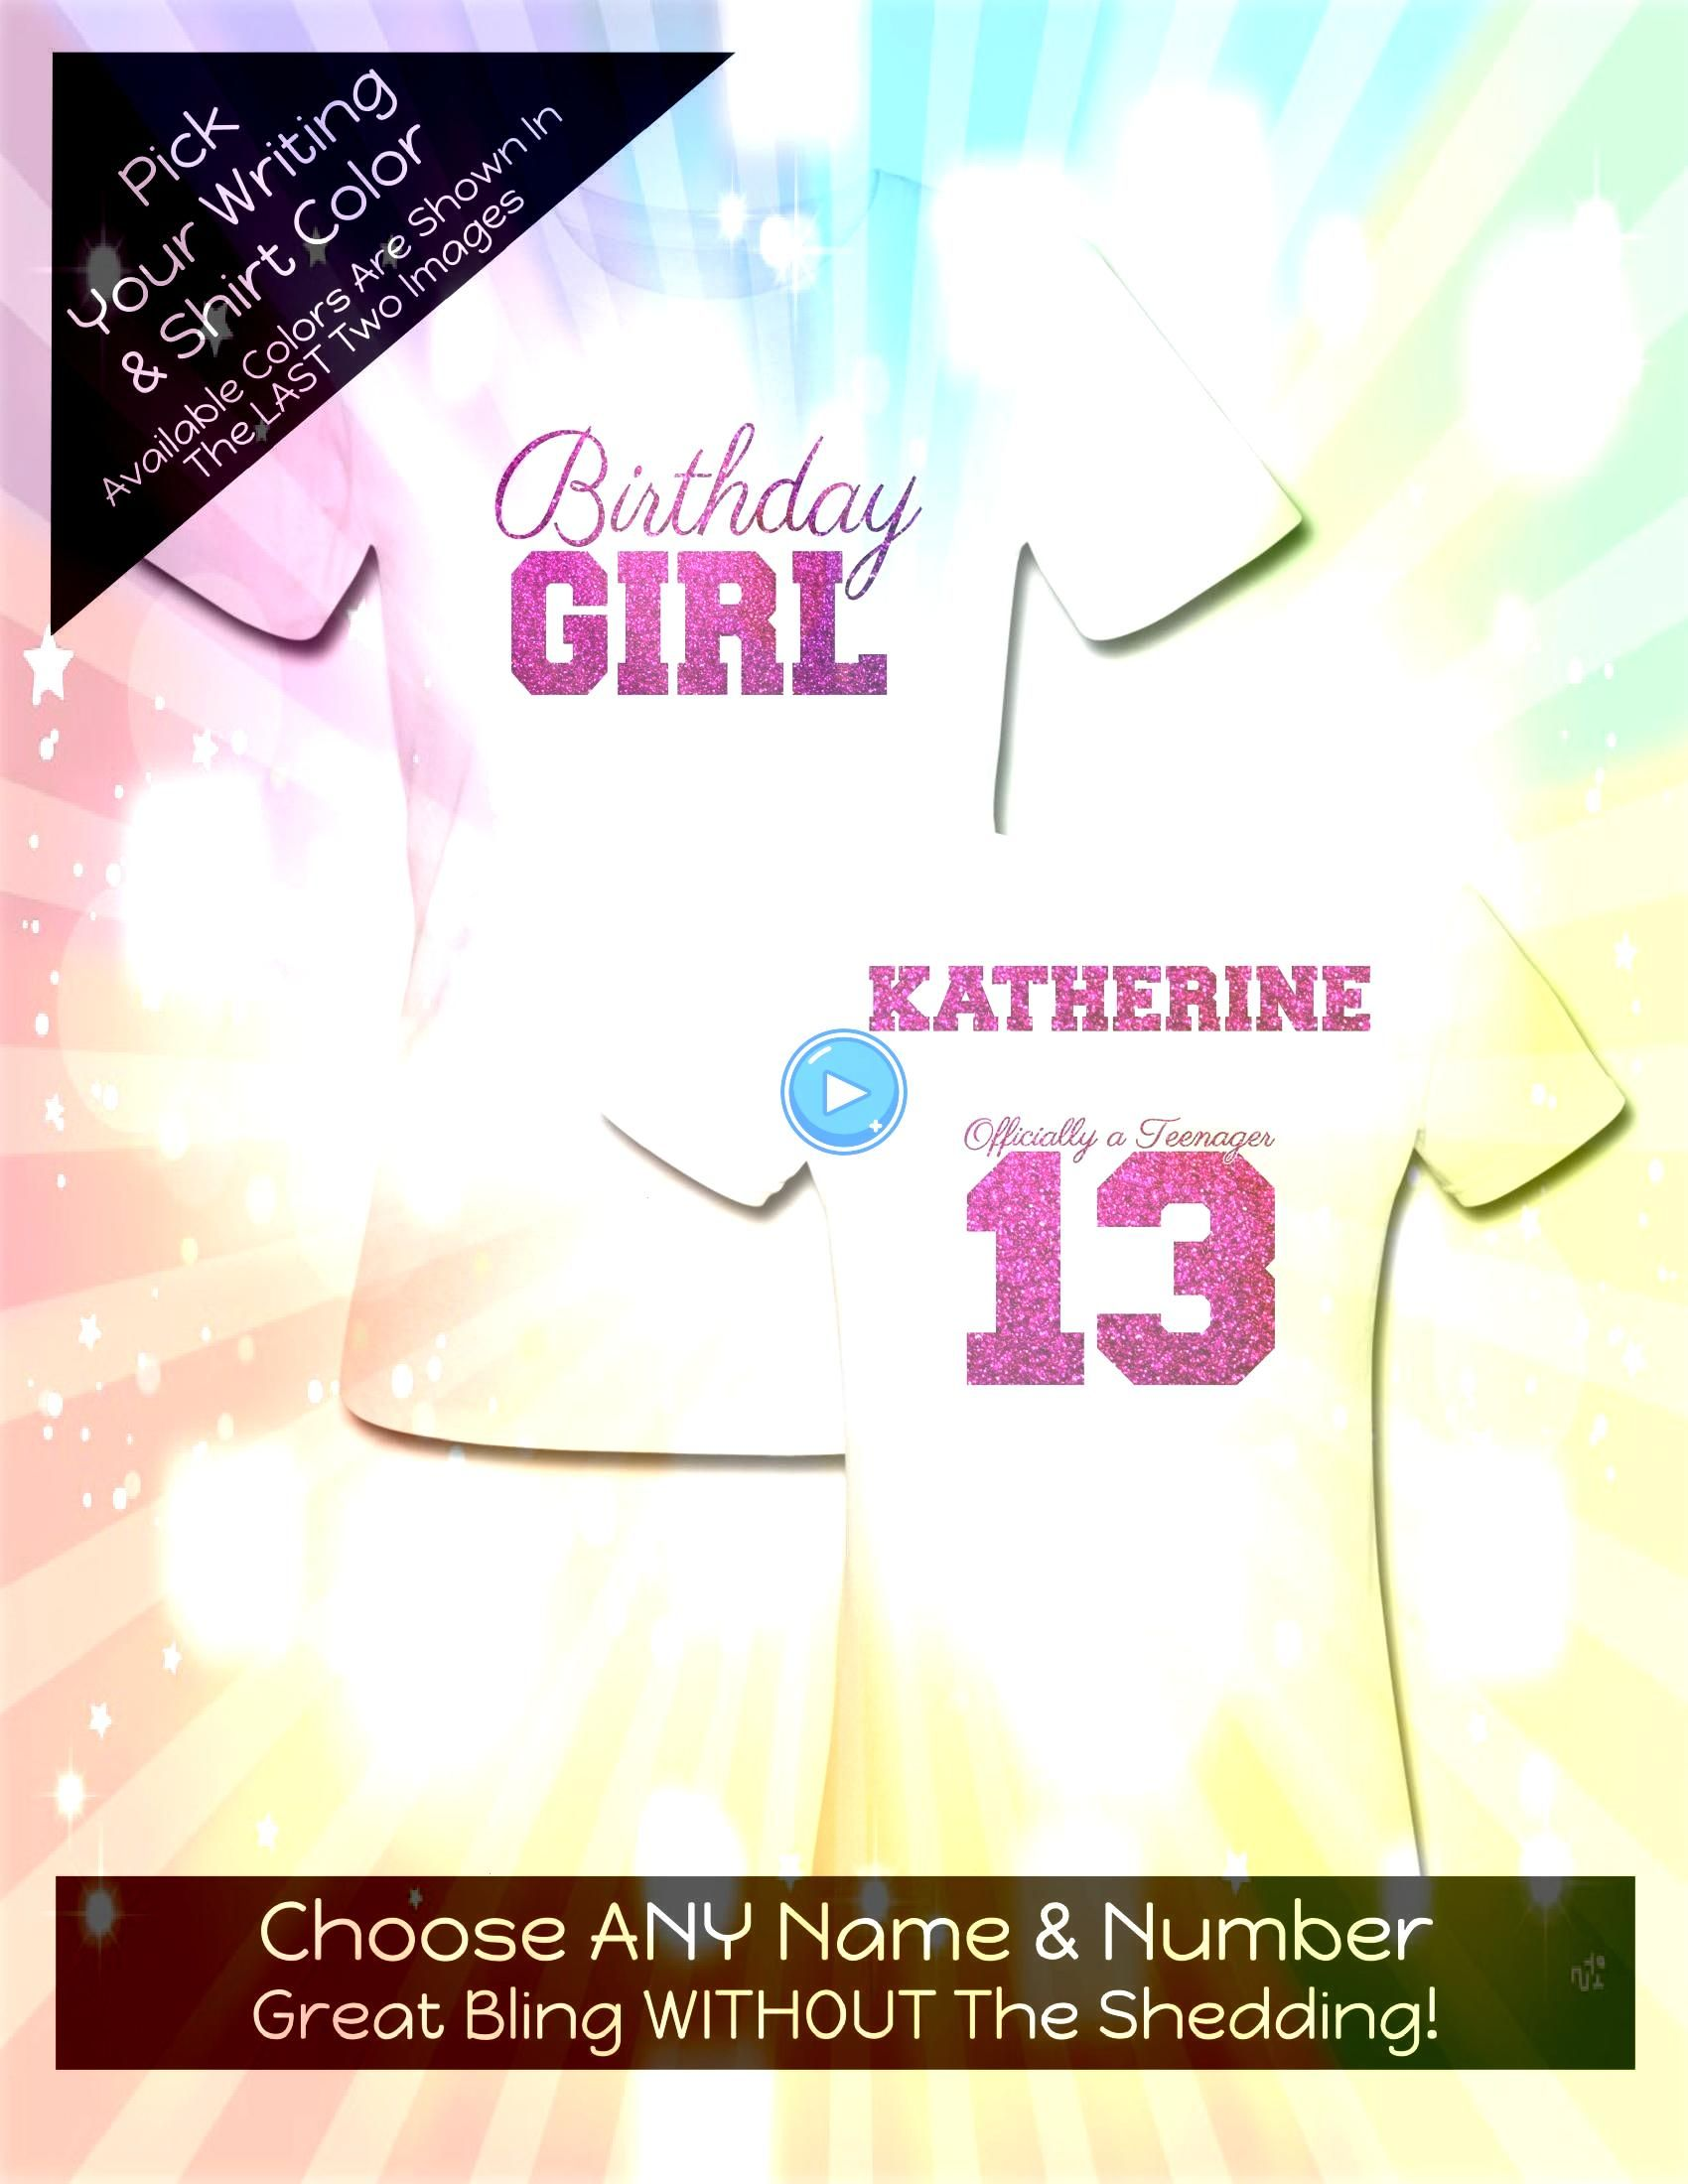 Girl Officially a Teenager 13 Shirt  Personalize the Name  Colors  All Glitter Option  Birthday Party Shirt Birthday Girl Officially a Teenager 13 Shirt  Personalize the...